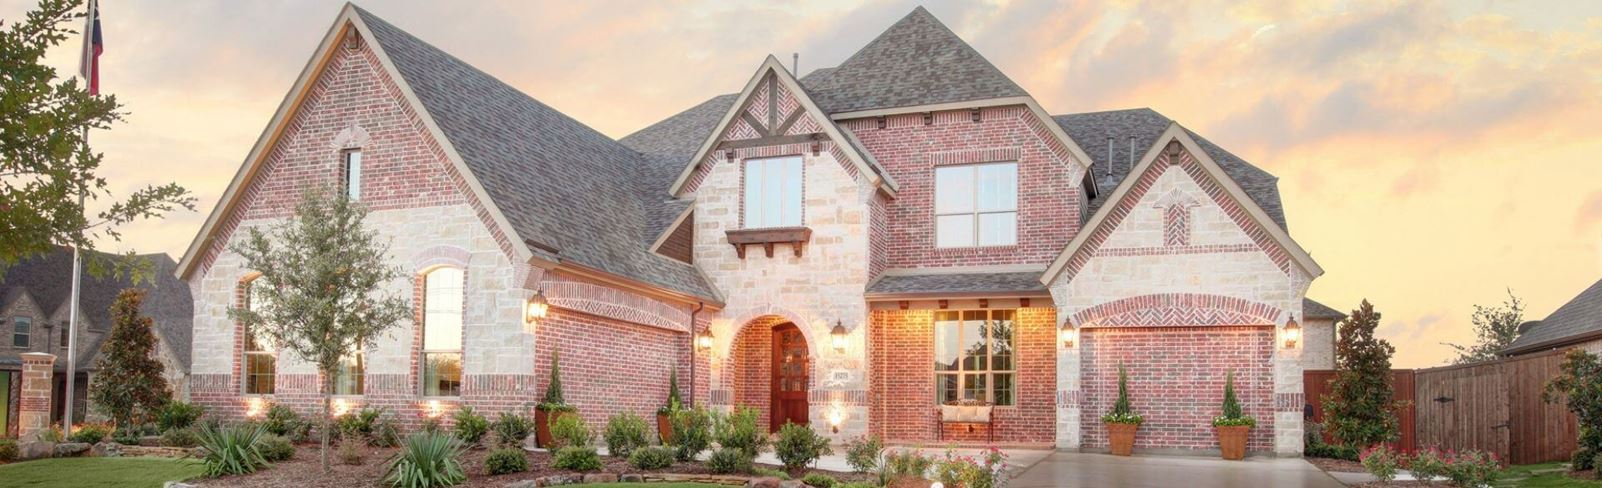 New home in Canyon Falls community located in Northlake, TX